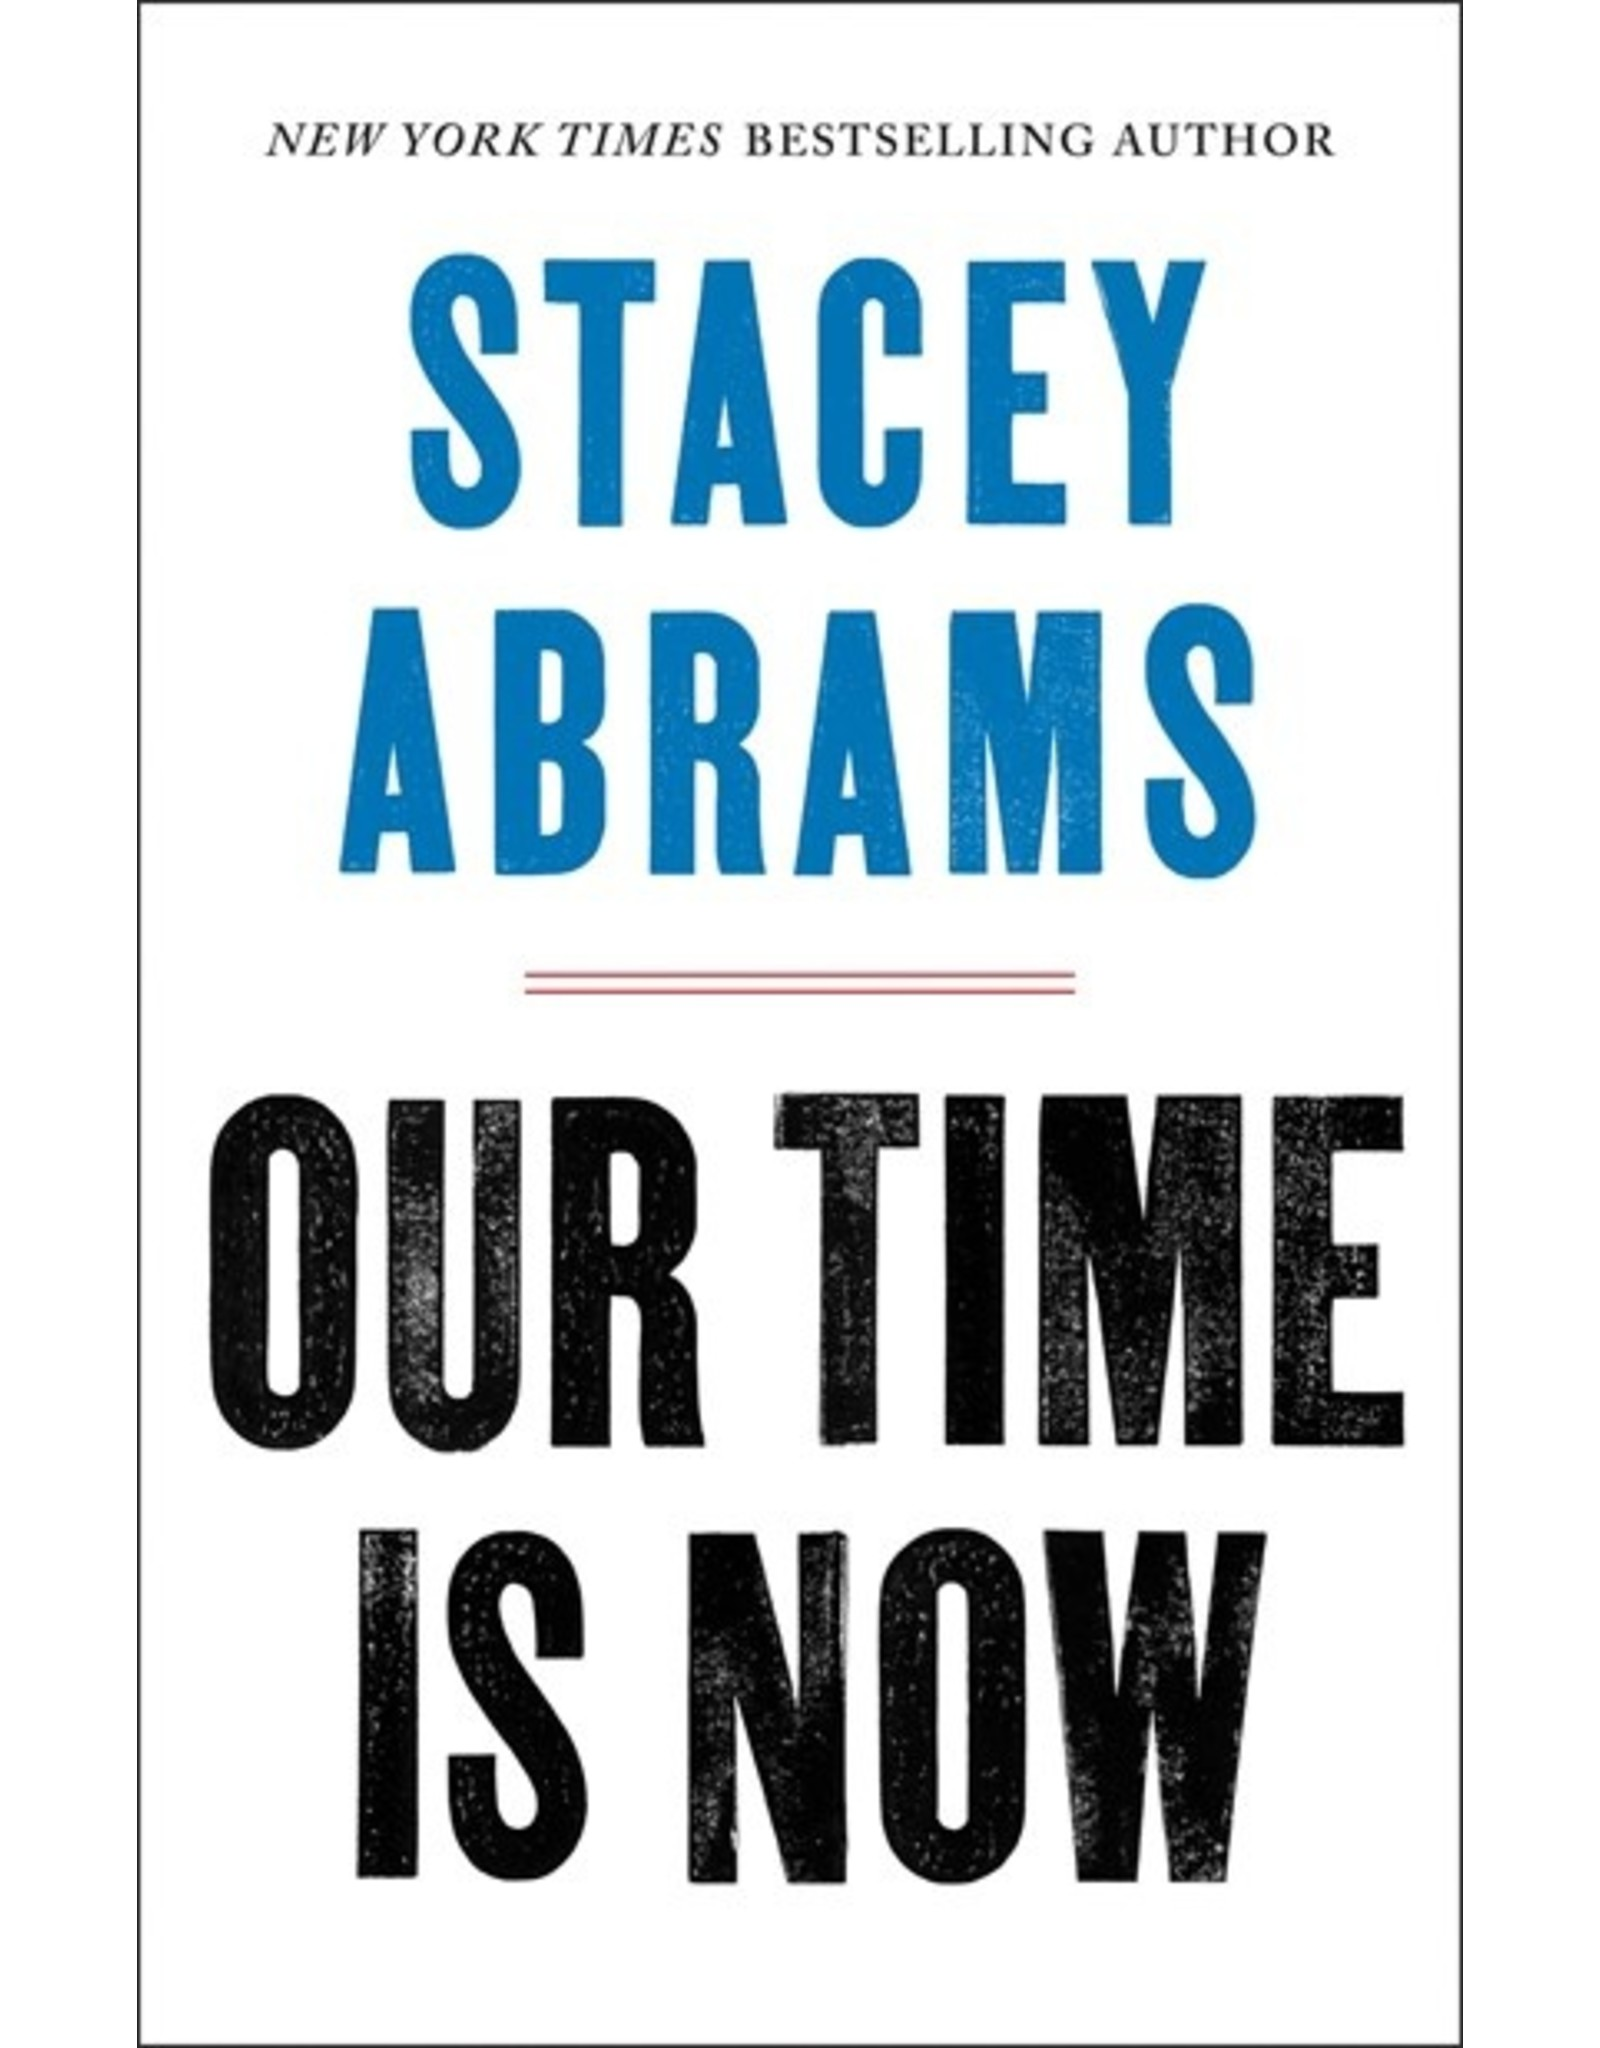 Books While Justice Sleeps by Stacey Abrams (Signed Copies)